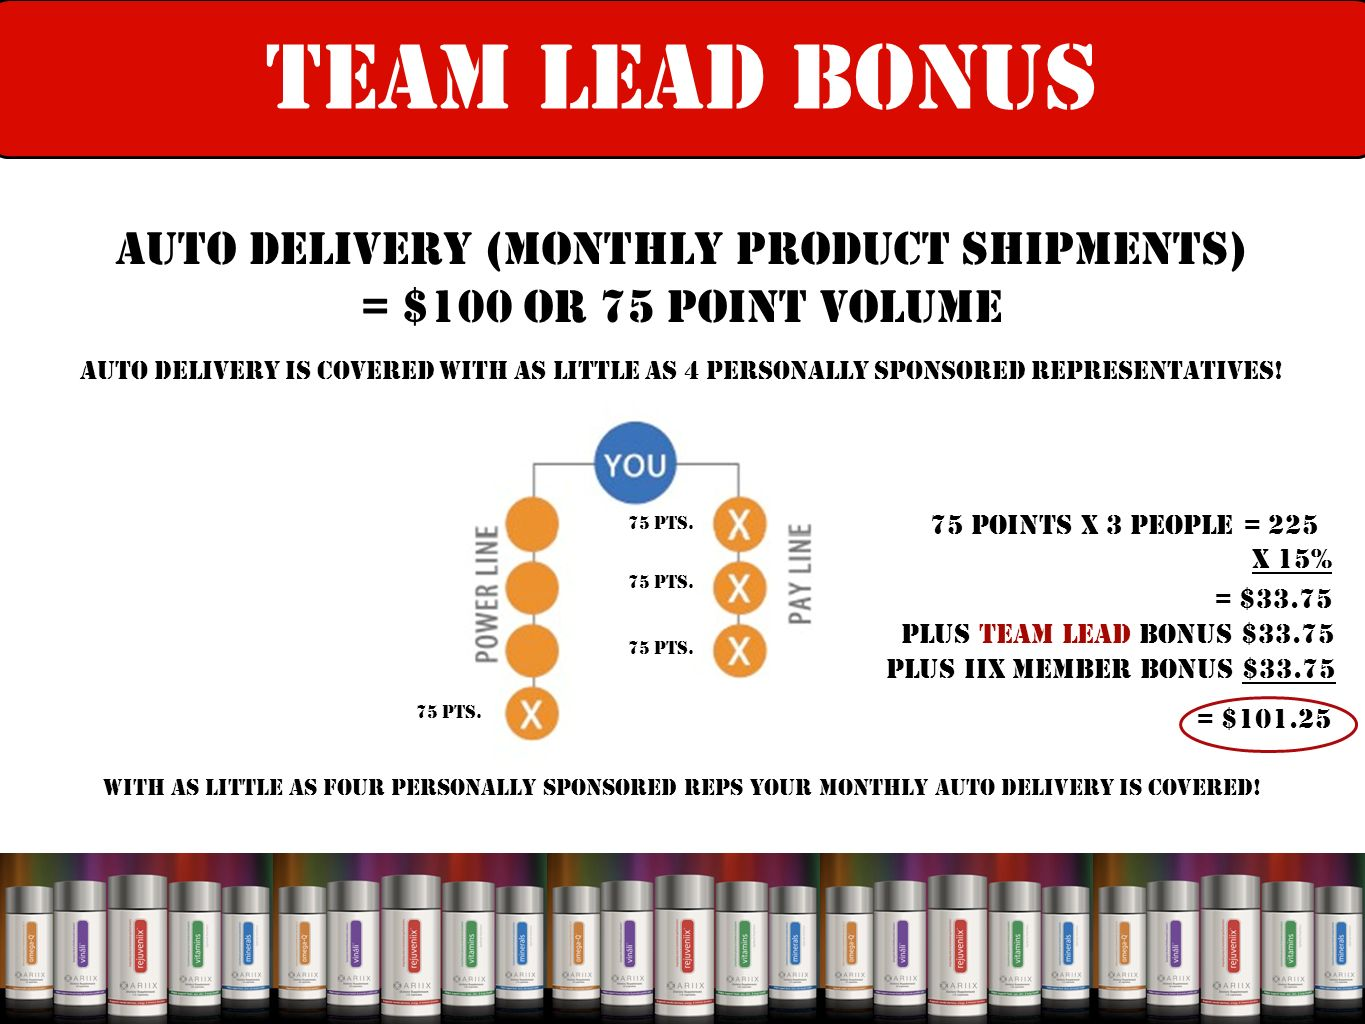 Auto Delivery (monthly product shipments) = $100 or 75 point volume Auto Delivery Is Covered With As Little As 4 Personally Sponsored Representatives.